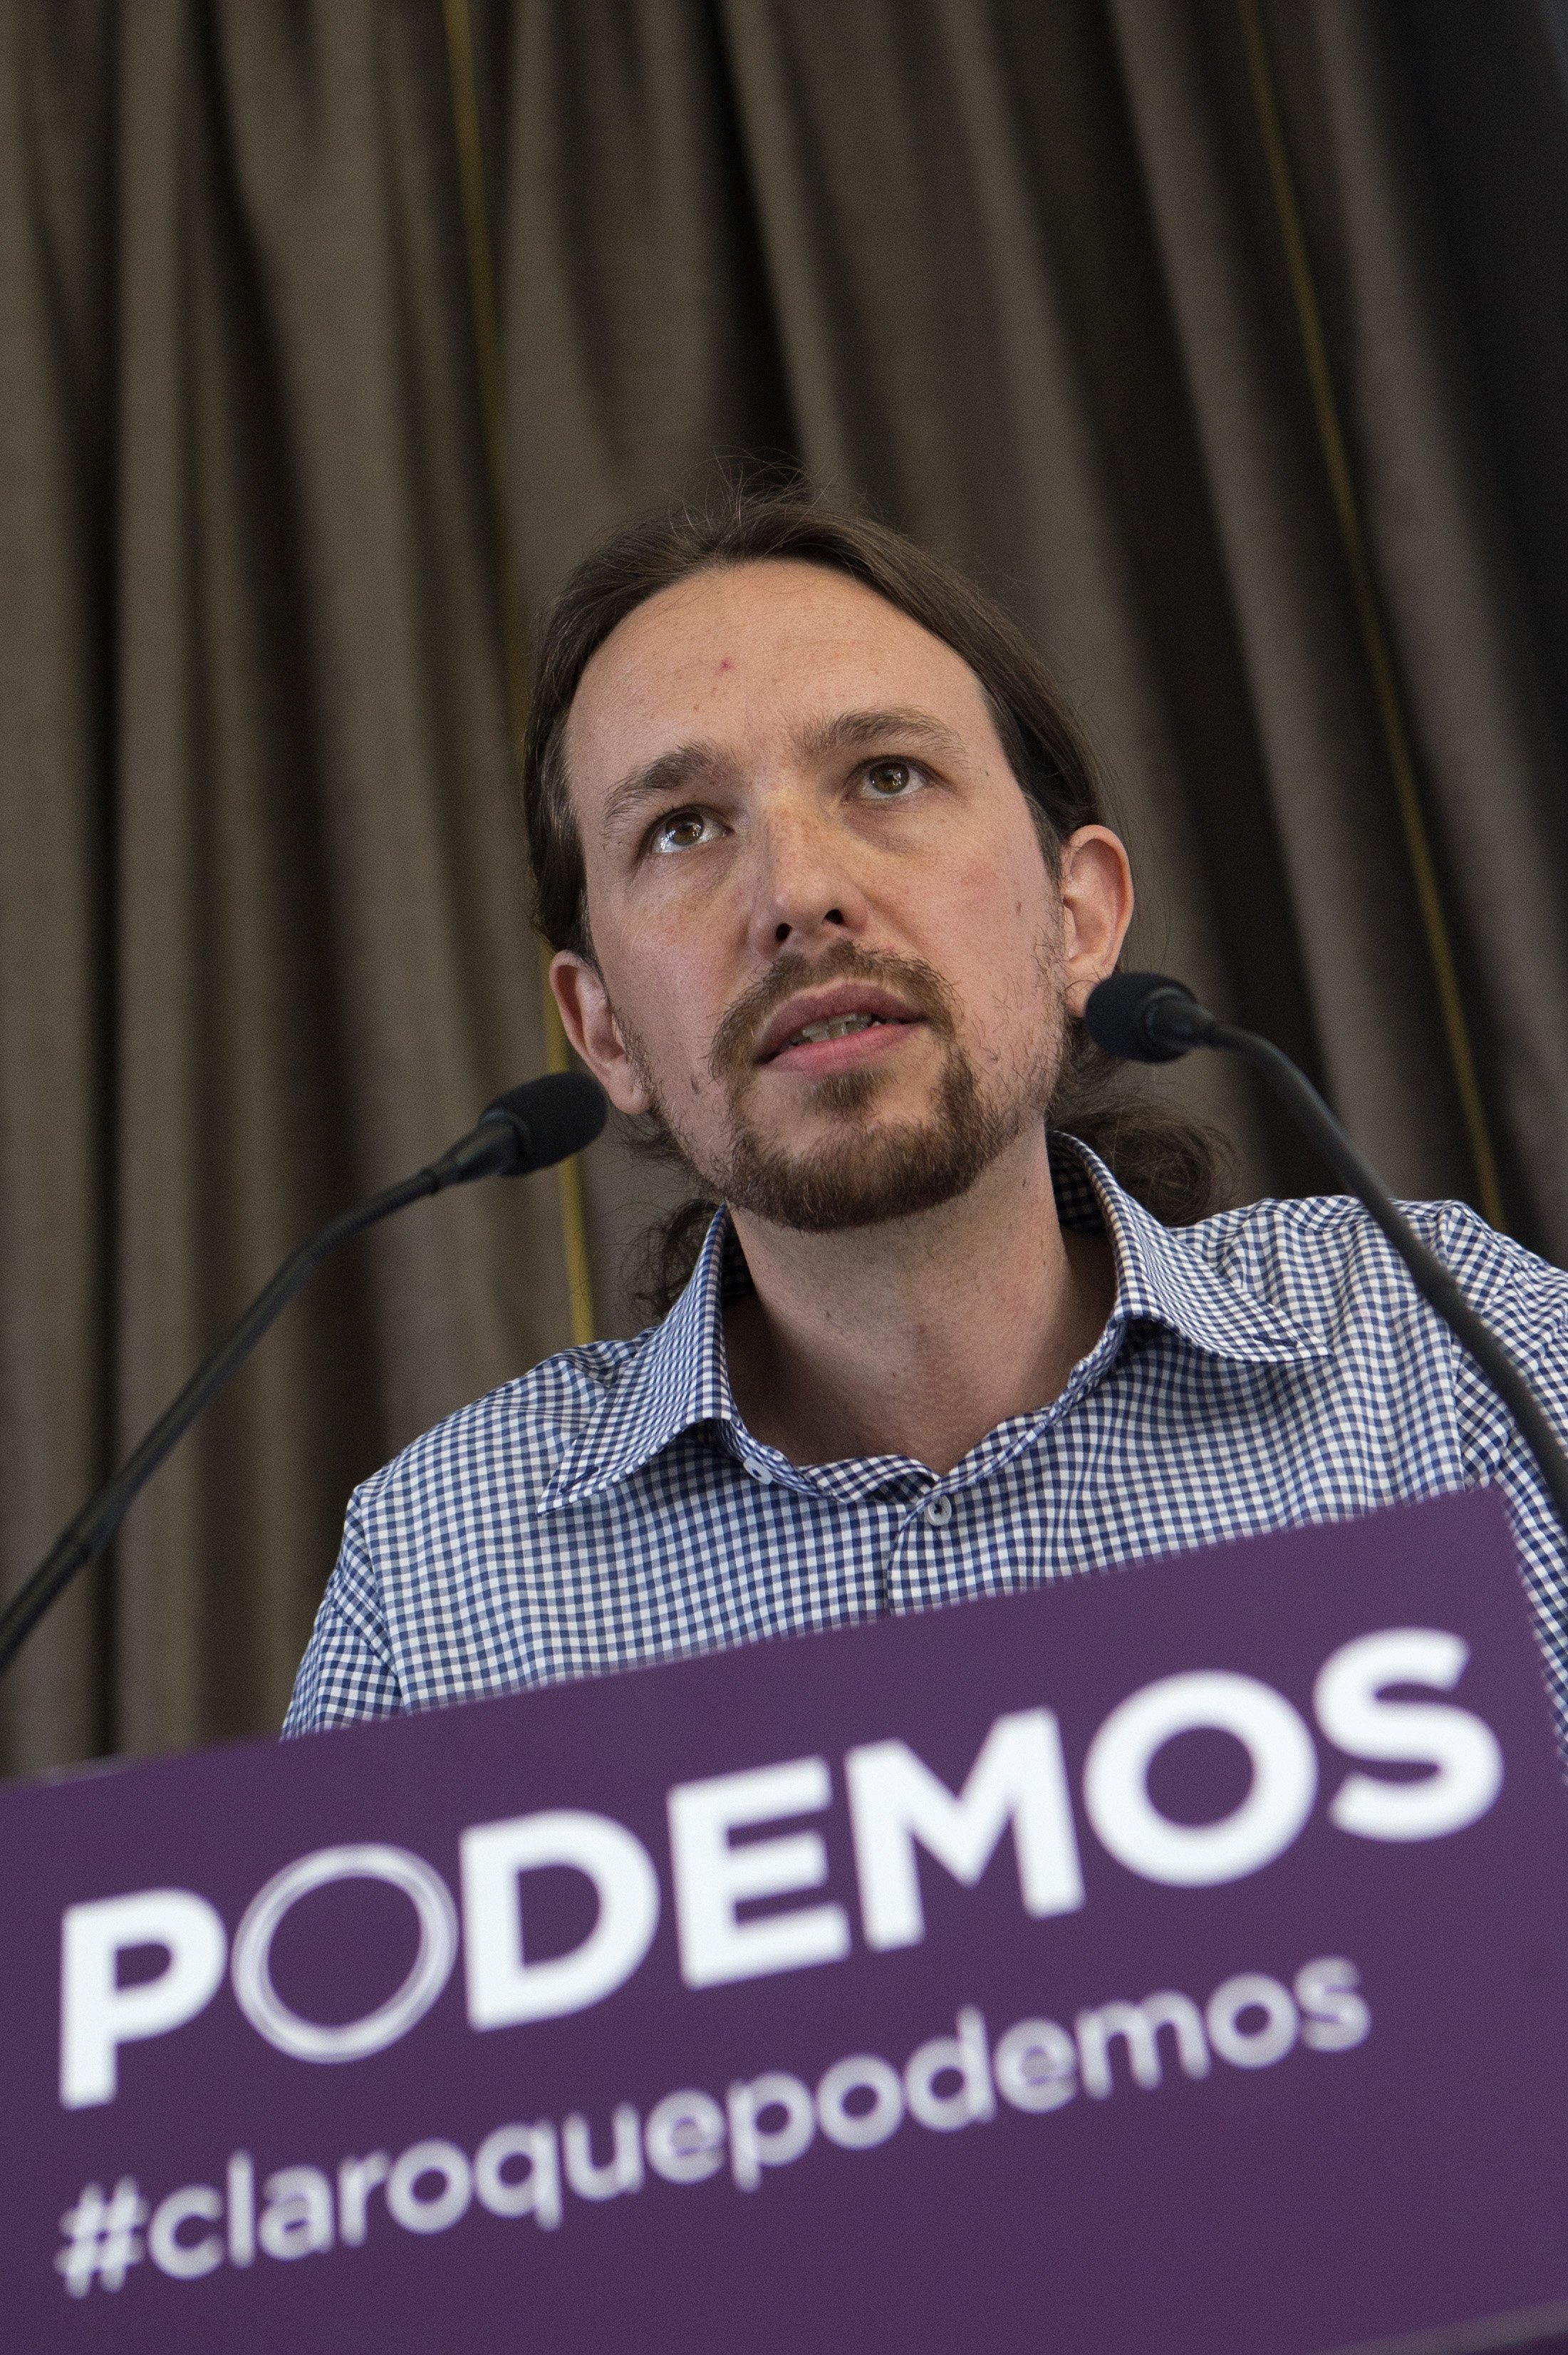 Pablo Iglesias, the leader of the leftist Podemos (We Can) party, speaks during a news conference in Madrid on May 30, 2014.